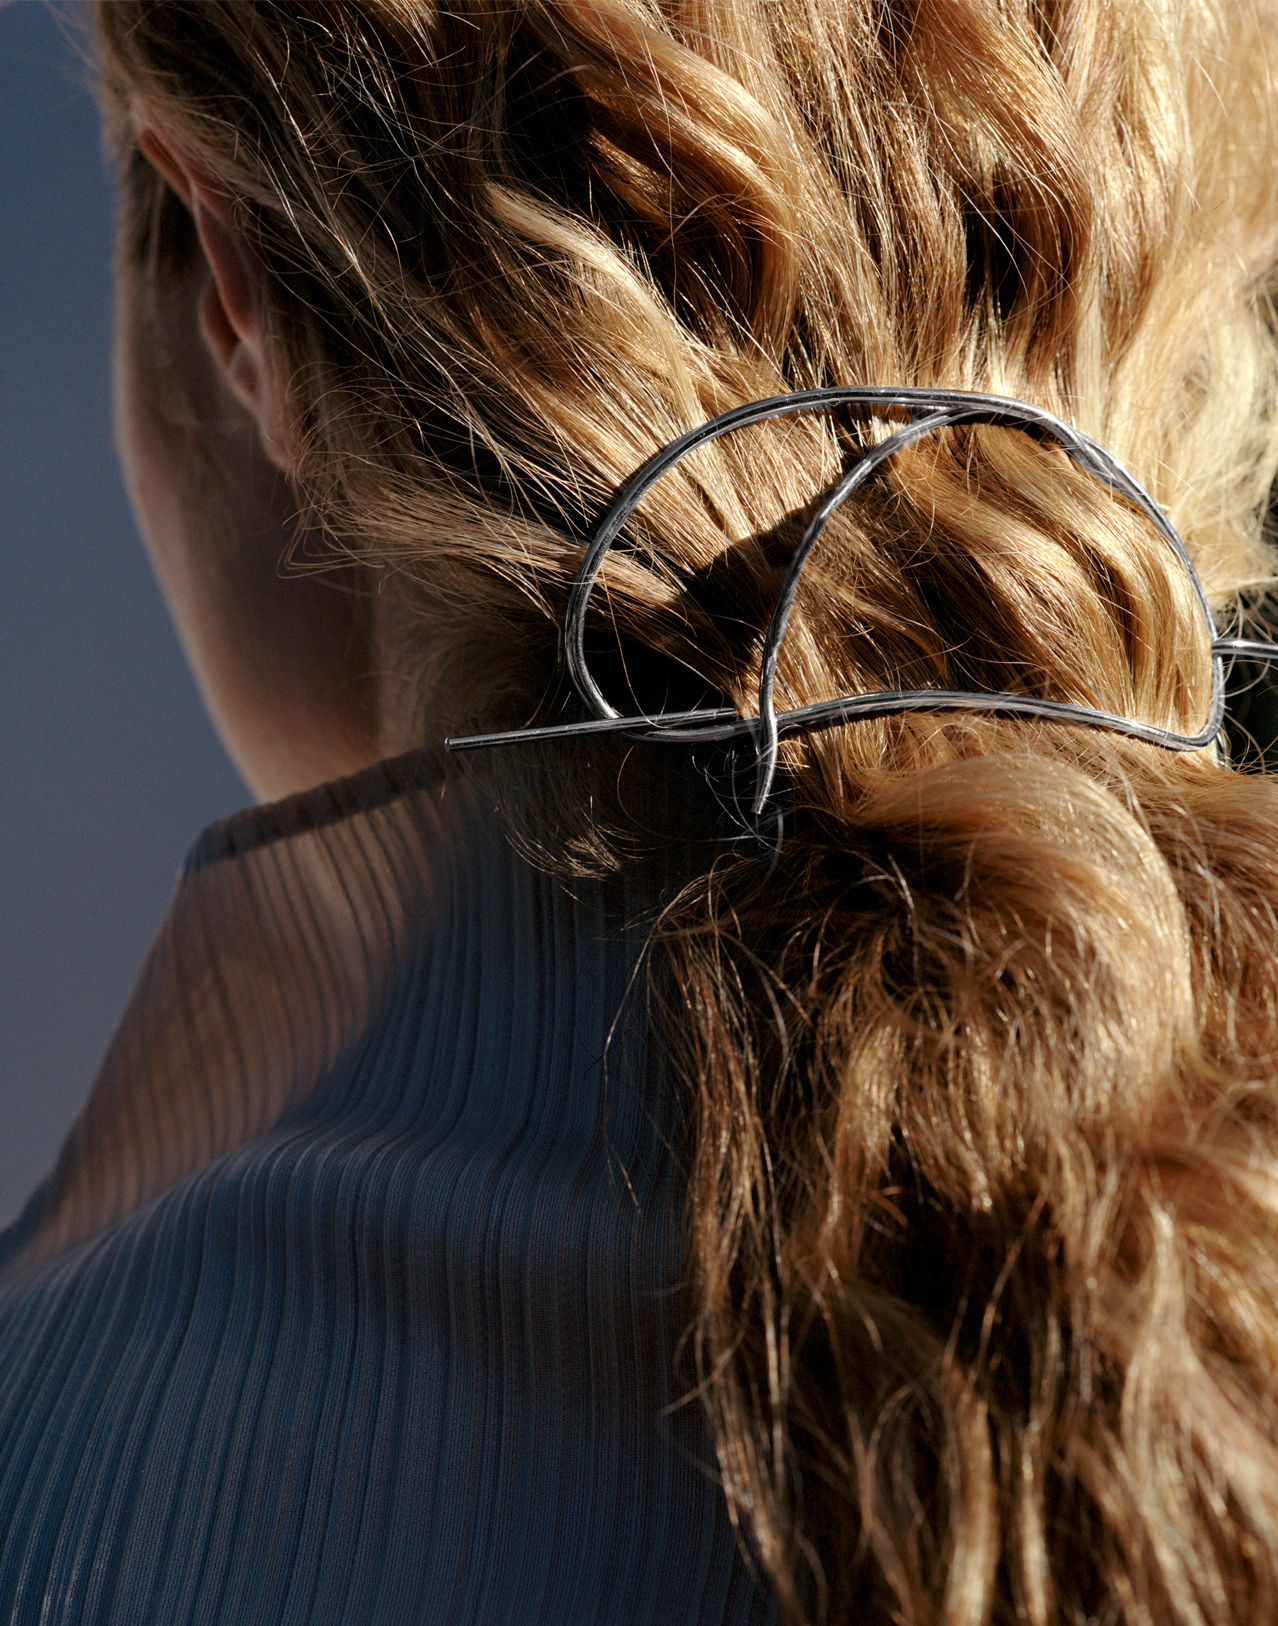 Completedworks-Tied-Hair-Pin-Silver-Brooch-A1022-10.jpg